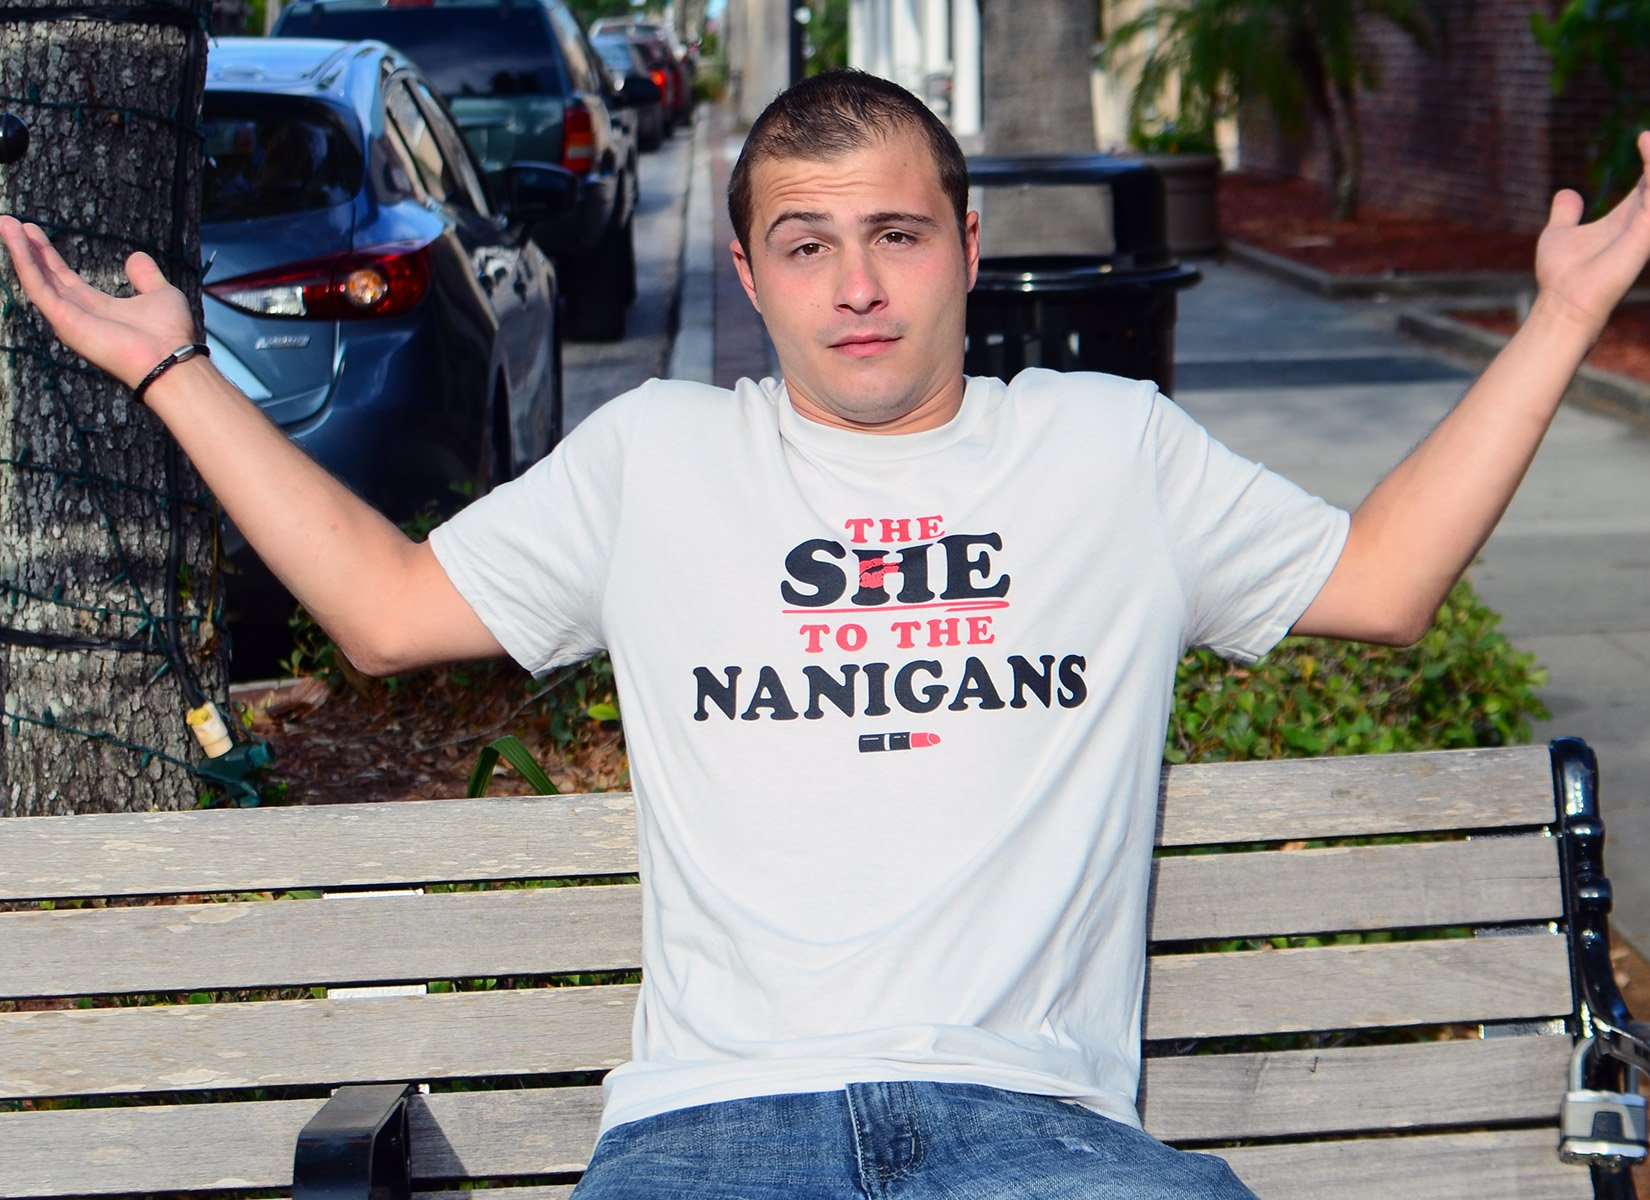 The She To The Nanigans on Mens T-Shirt